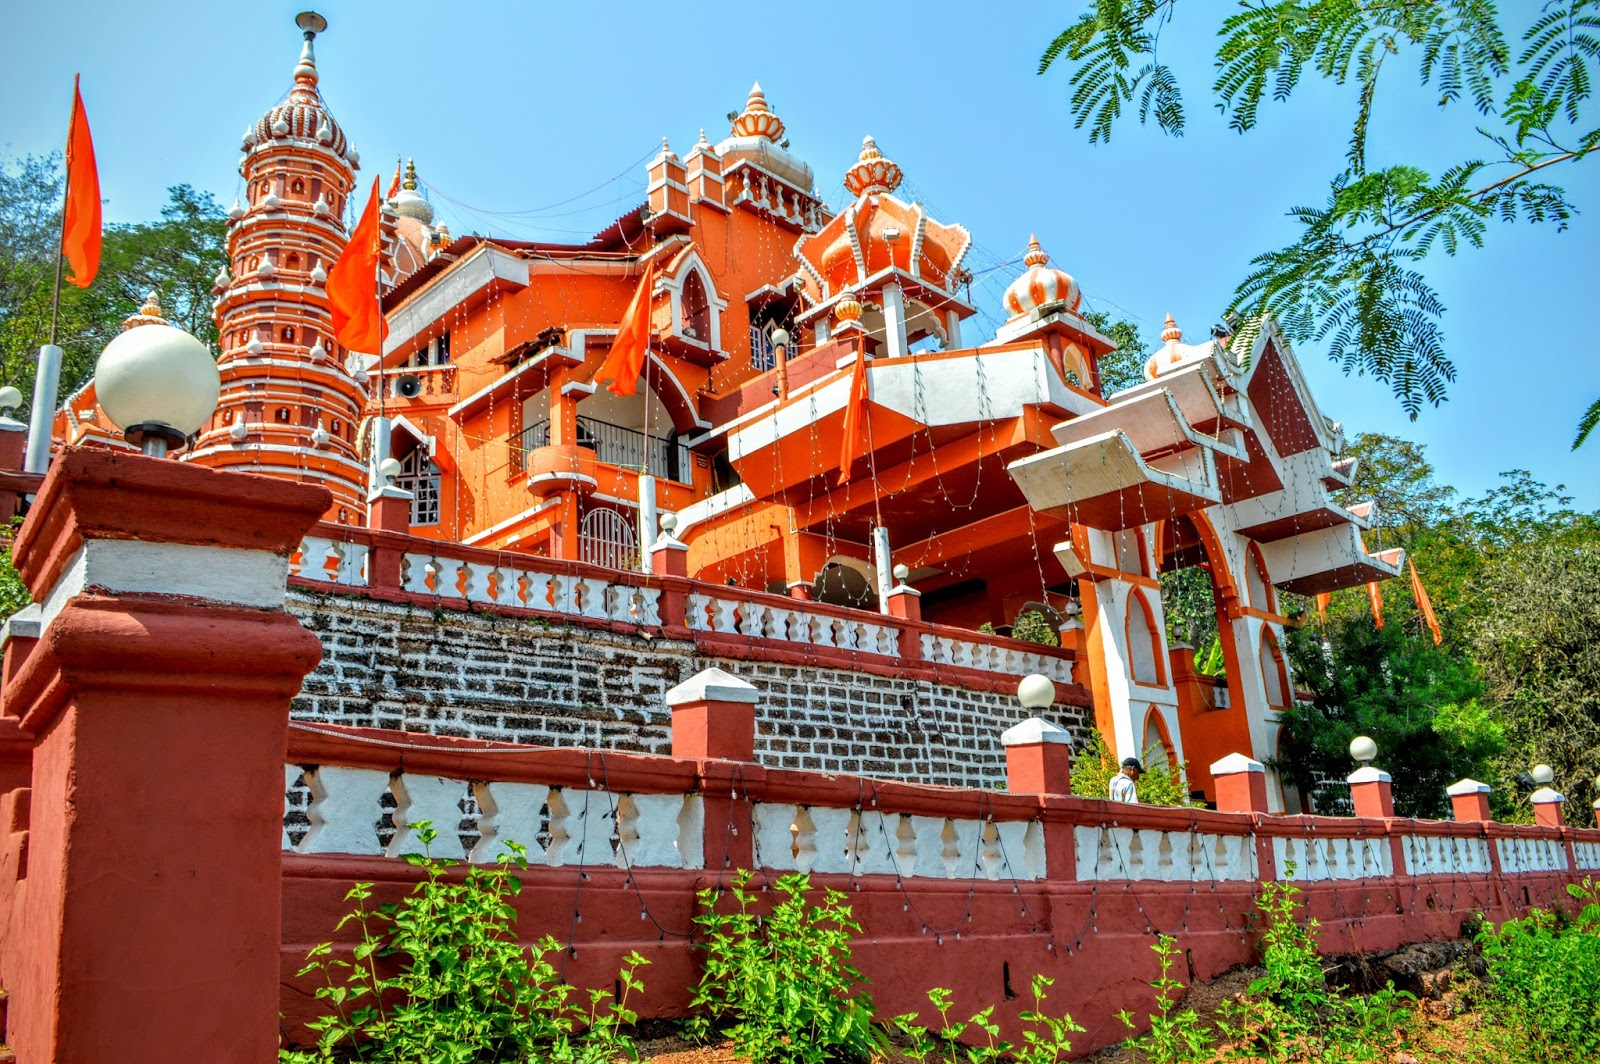 Maruti Temple - Go On A Spiritual Journey to Best Temples in Goa